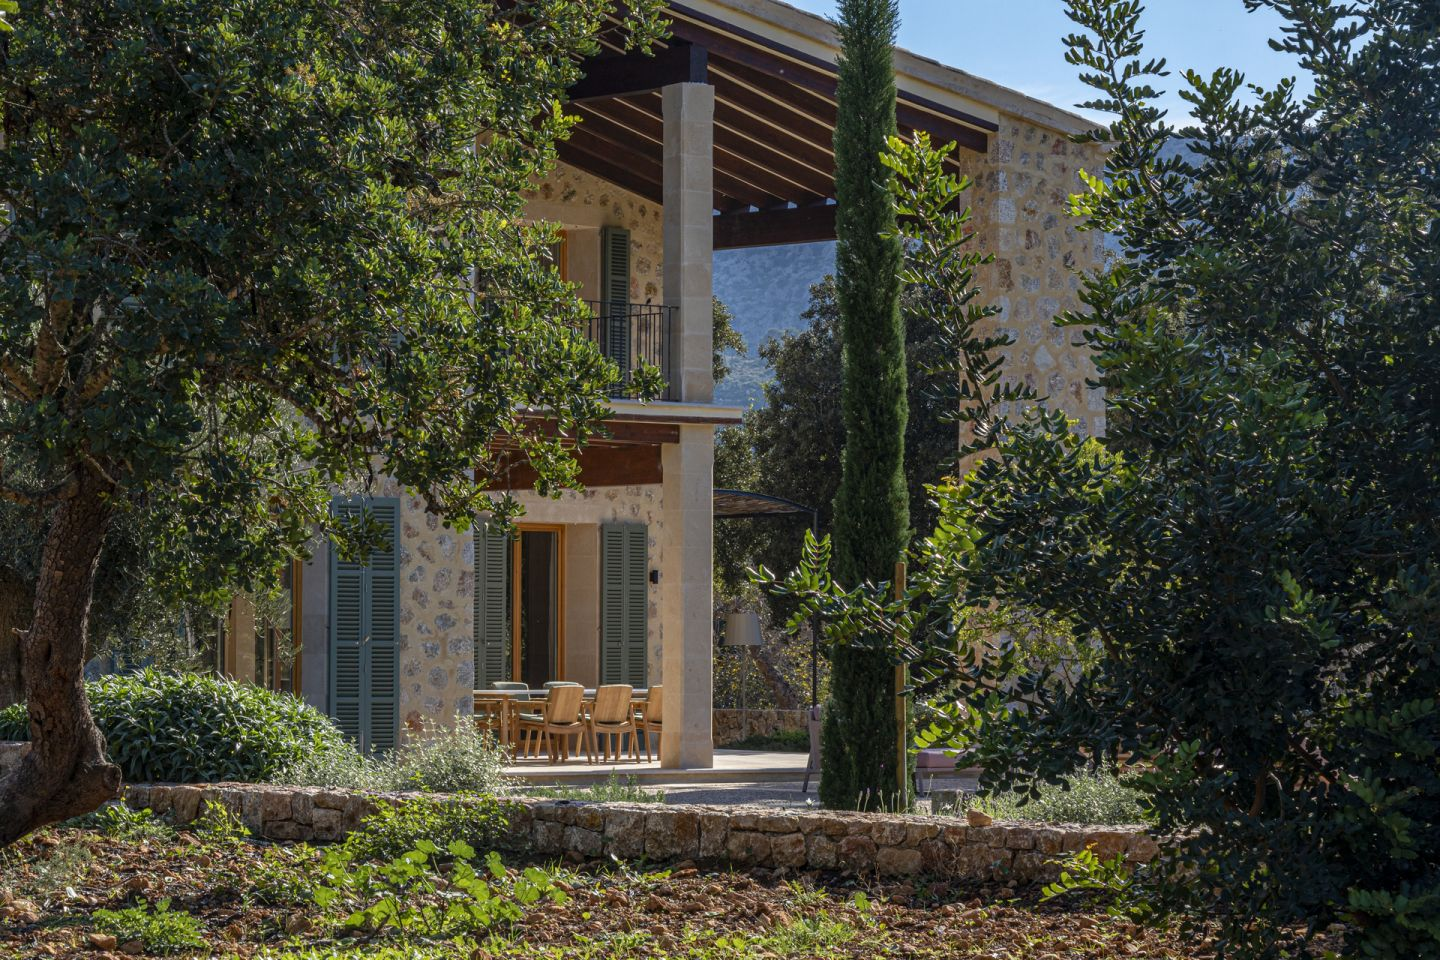 5 Bed Countryside House for sale in POLLENSA 21